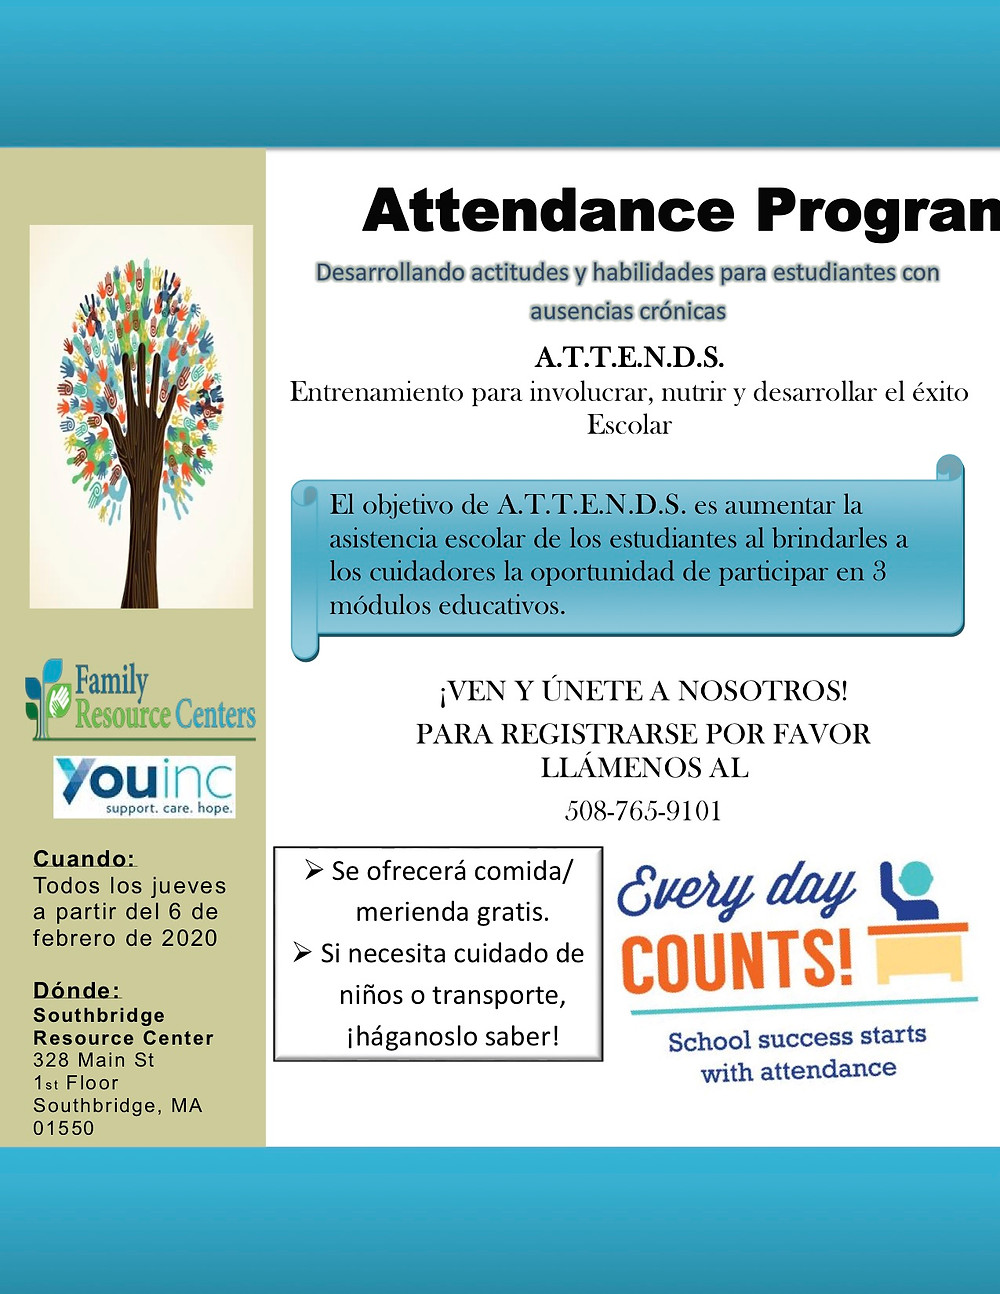 Flyer for a local program promoting school attendance in English